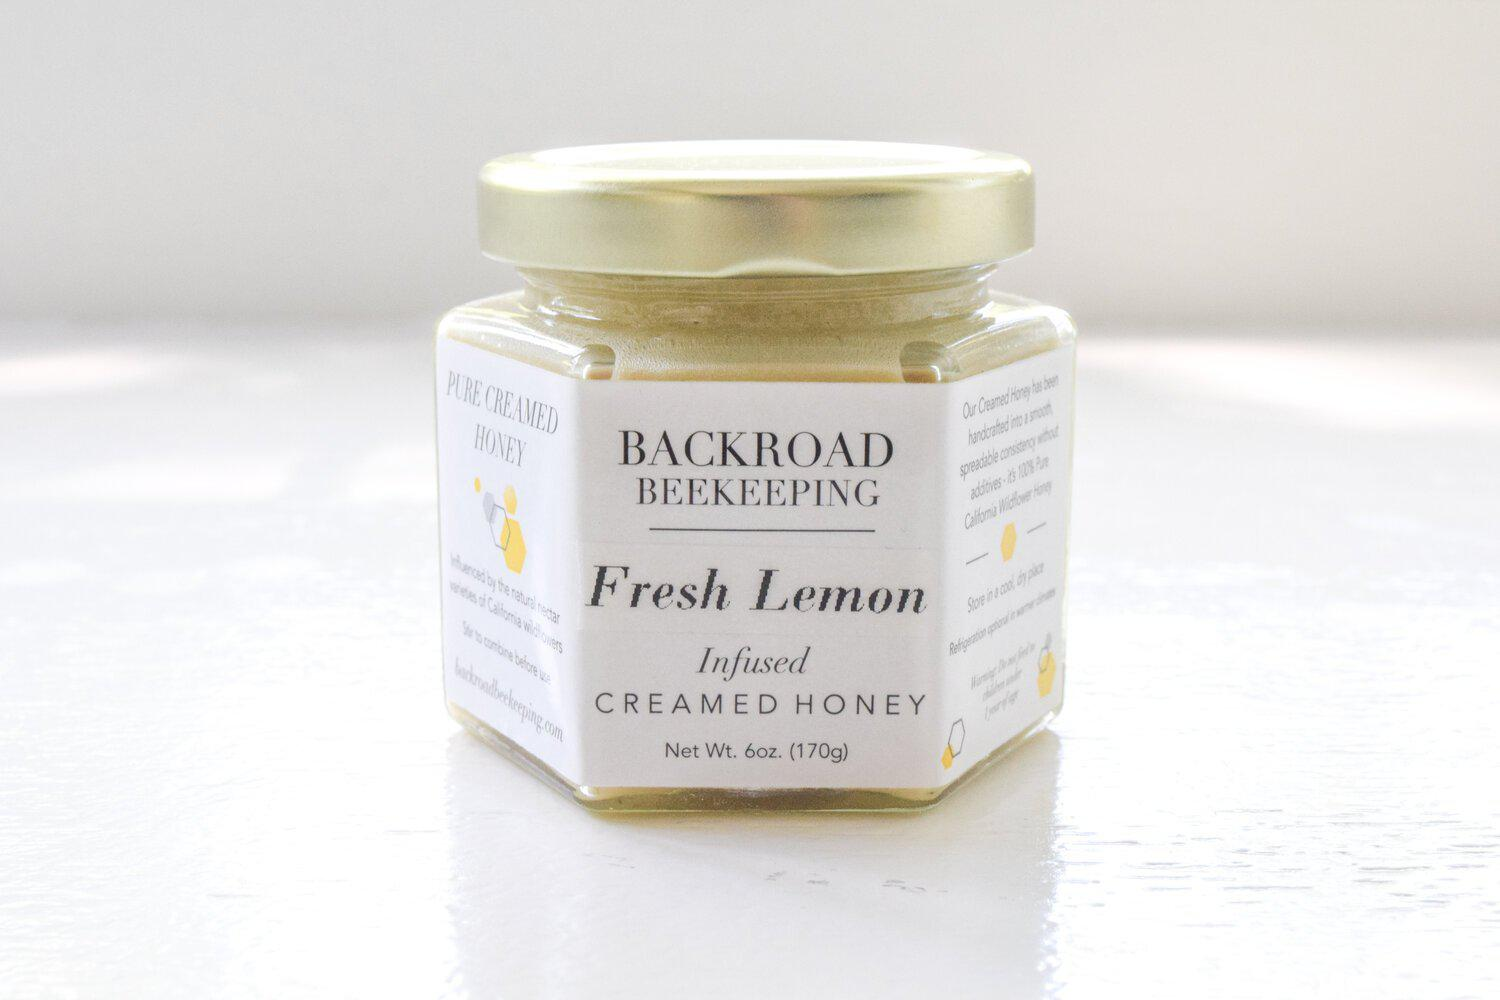 Fresh Lemon Creamed Honey